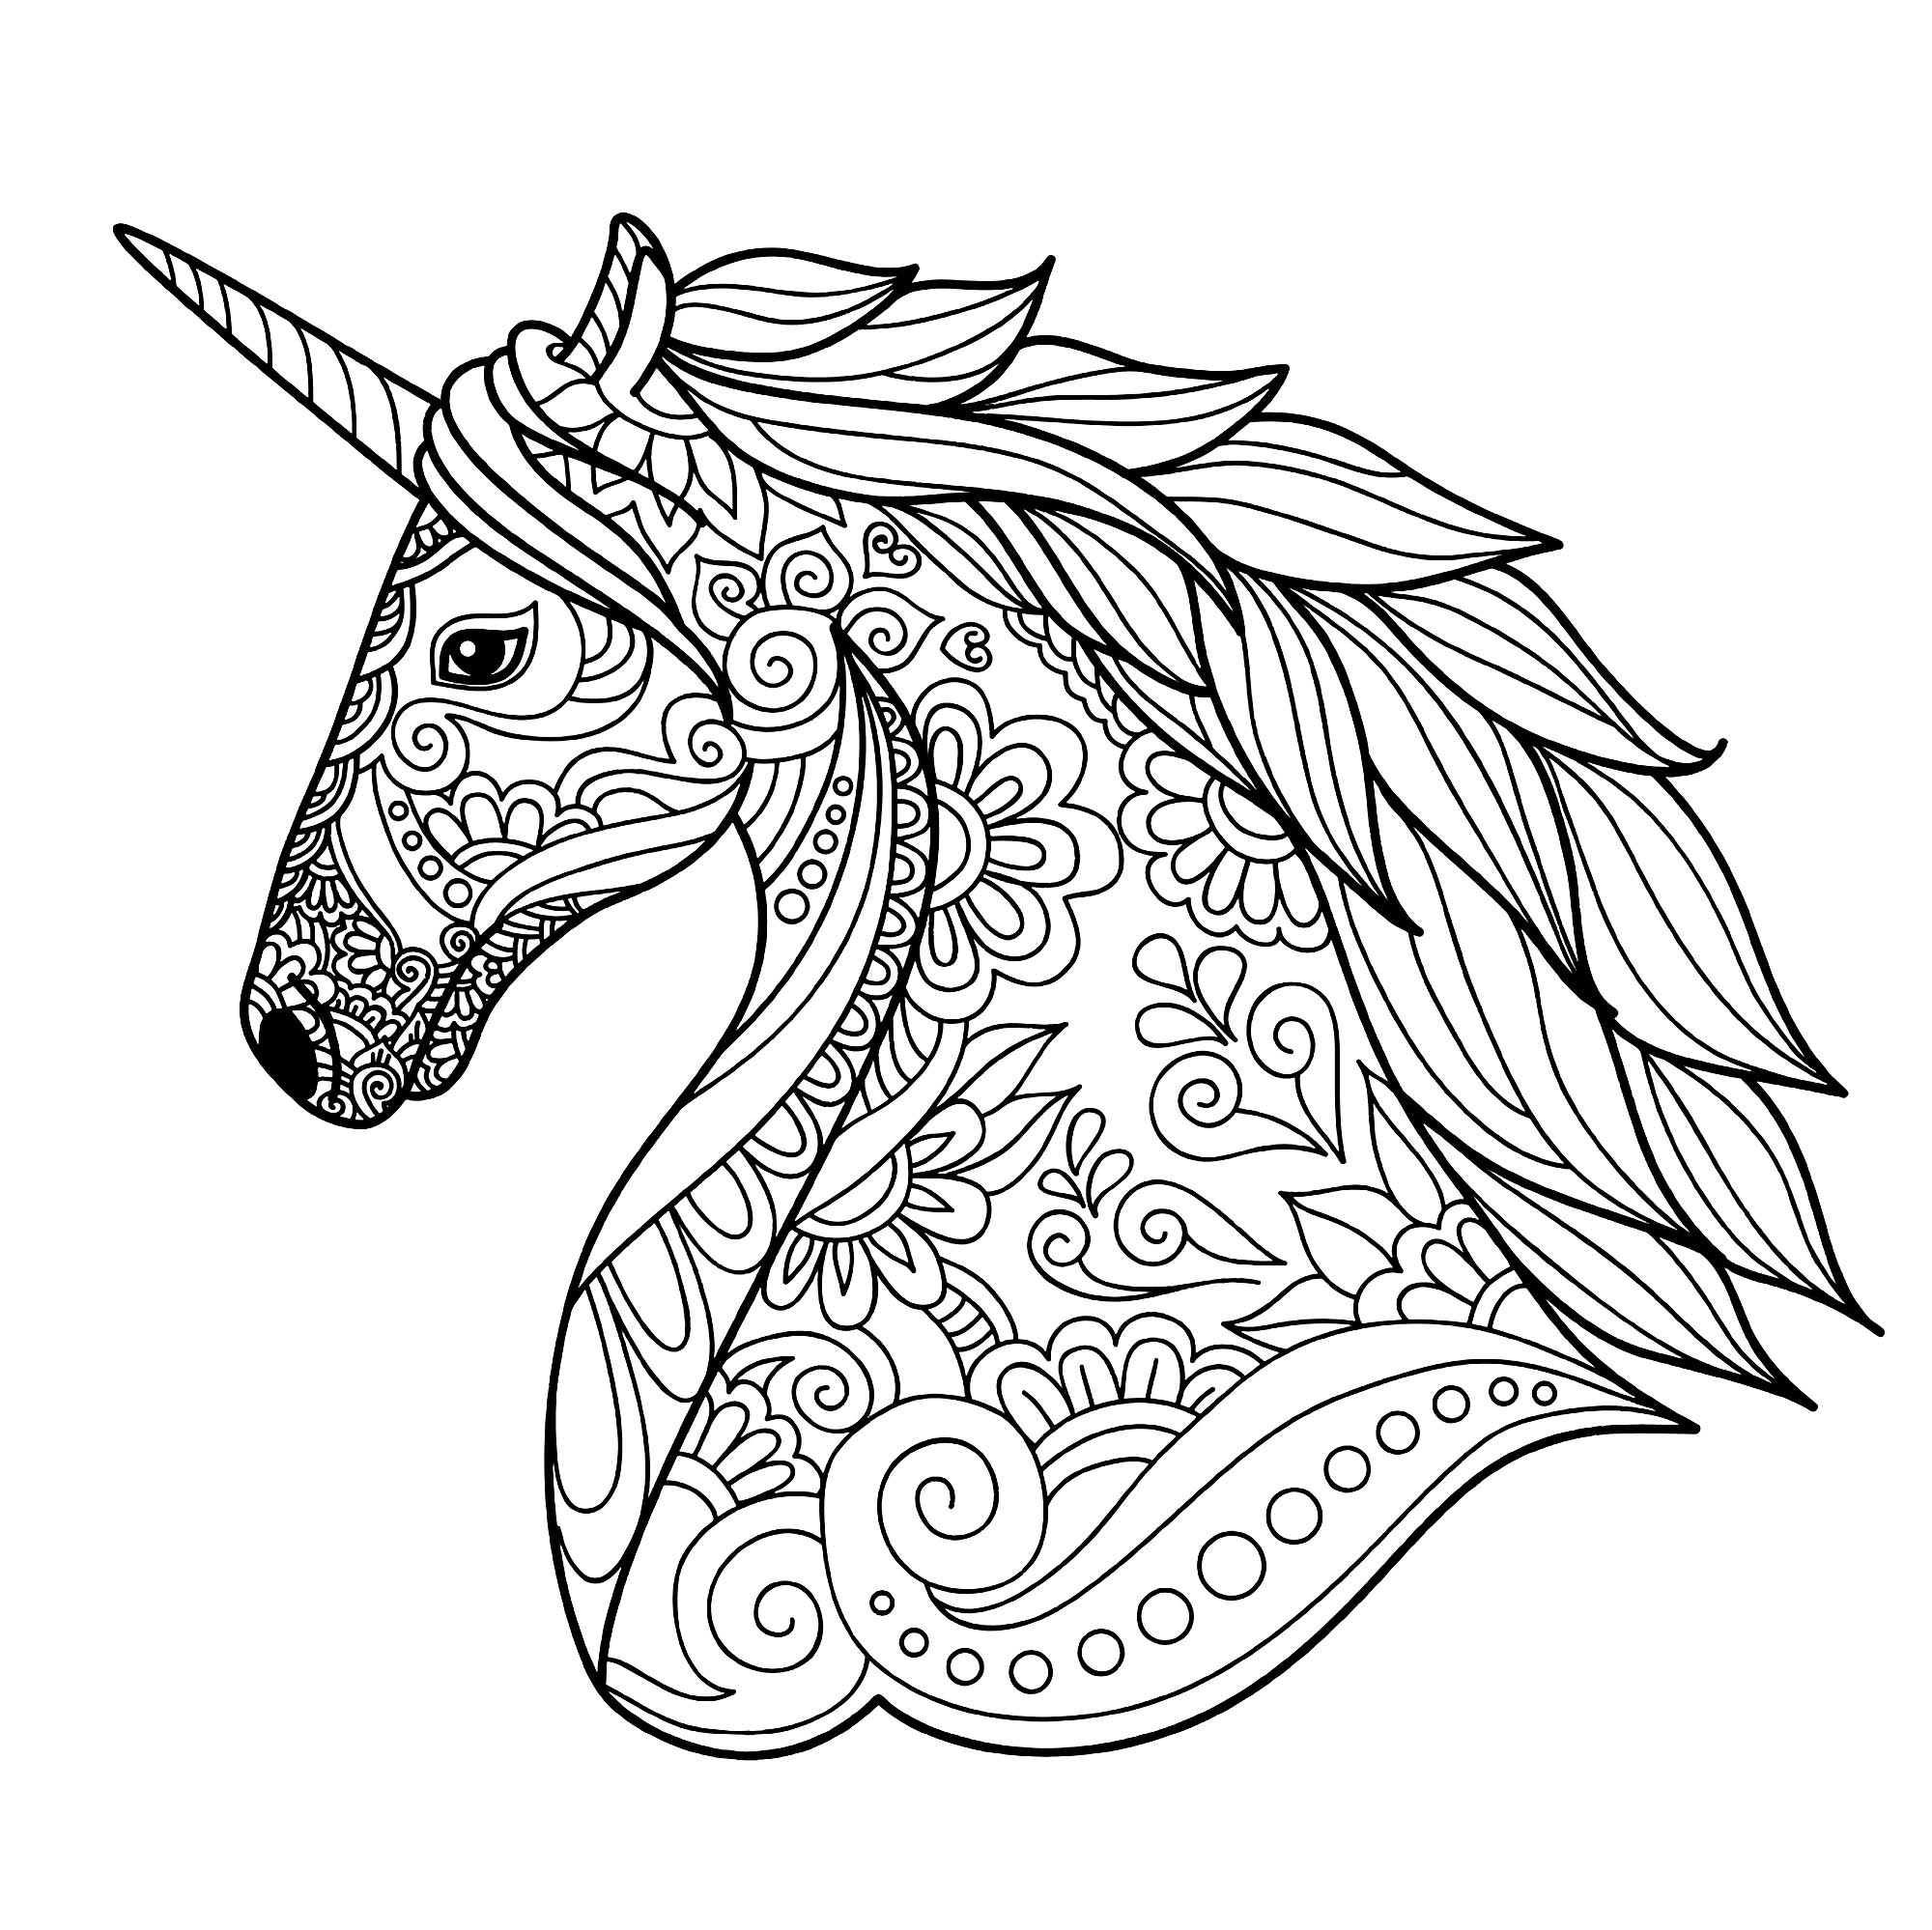 coloring sheet unicorn coloring pictures to print unicorn coloring pages cool2bkids coloring to print sheet coloring unicorn pictures